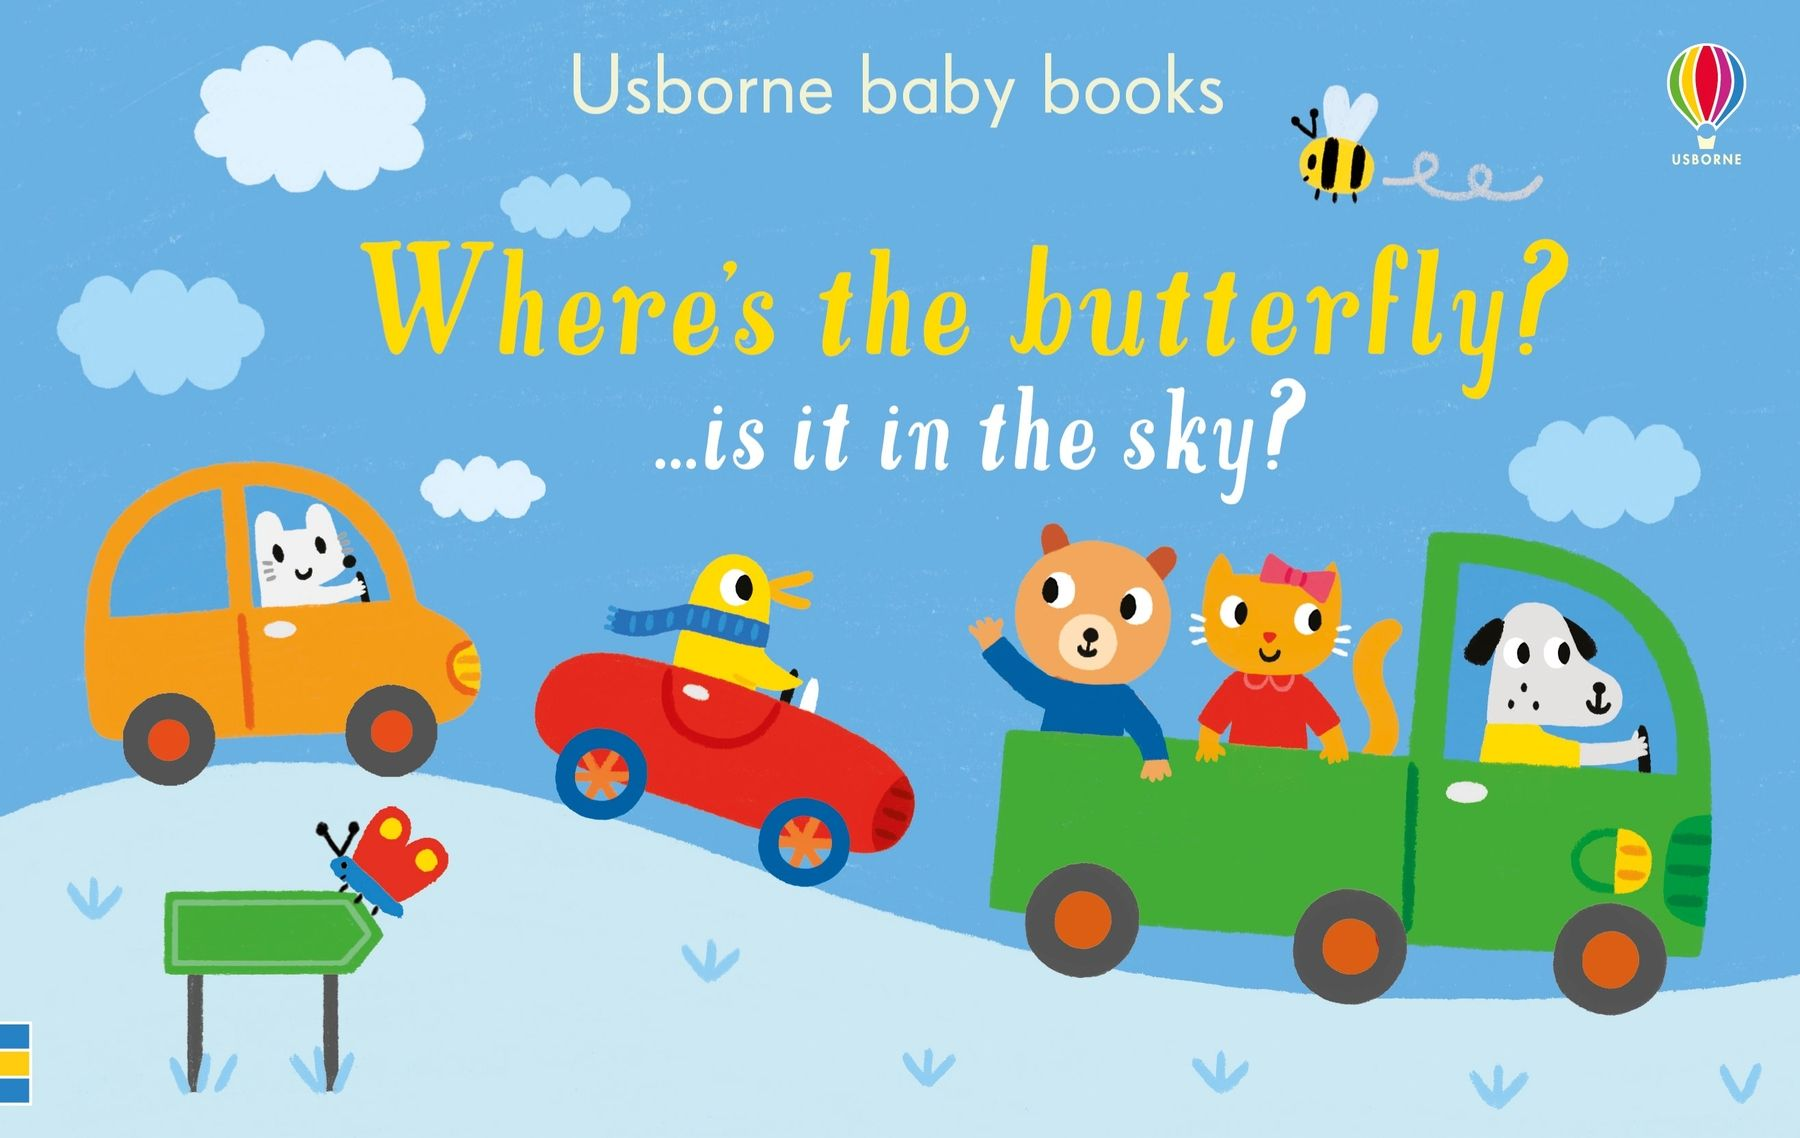 Where's The Butterfly? Image